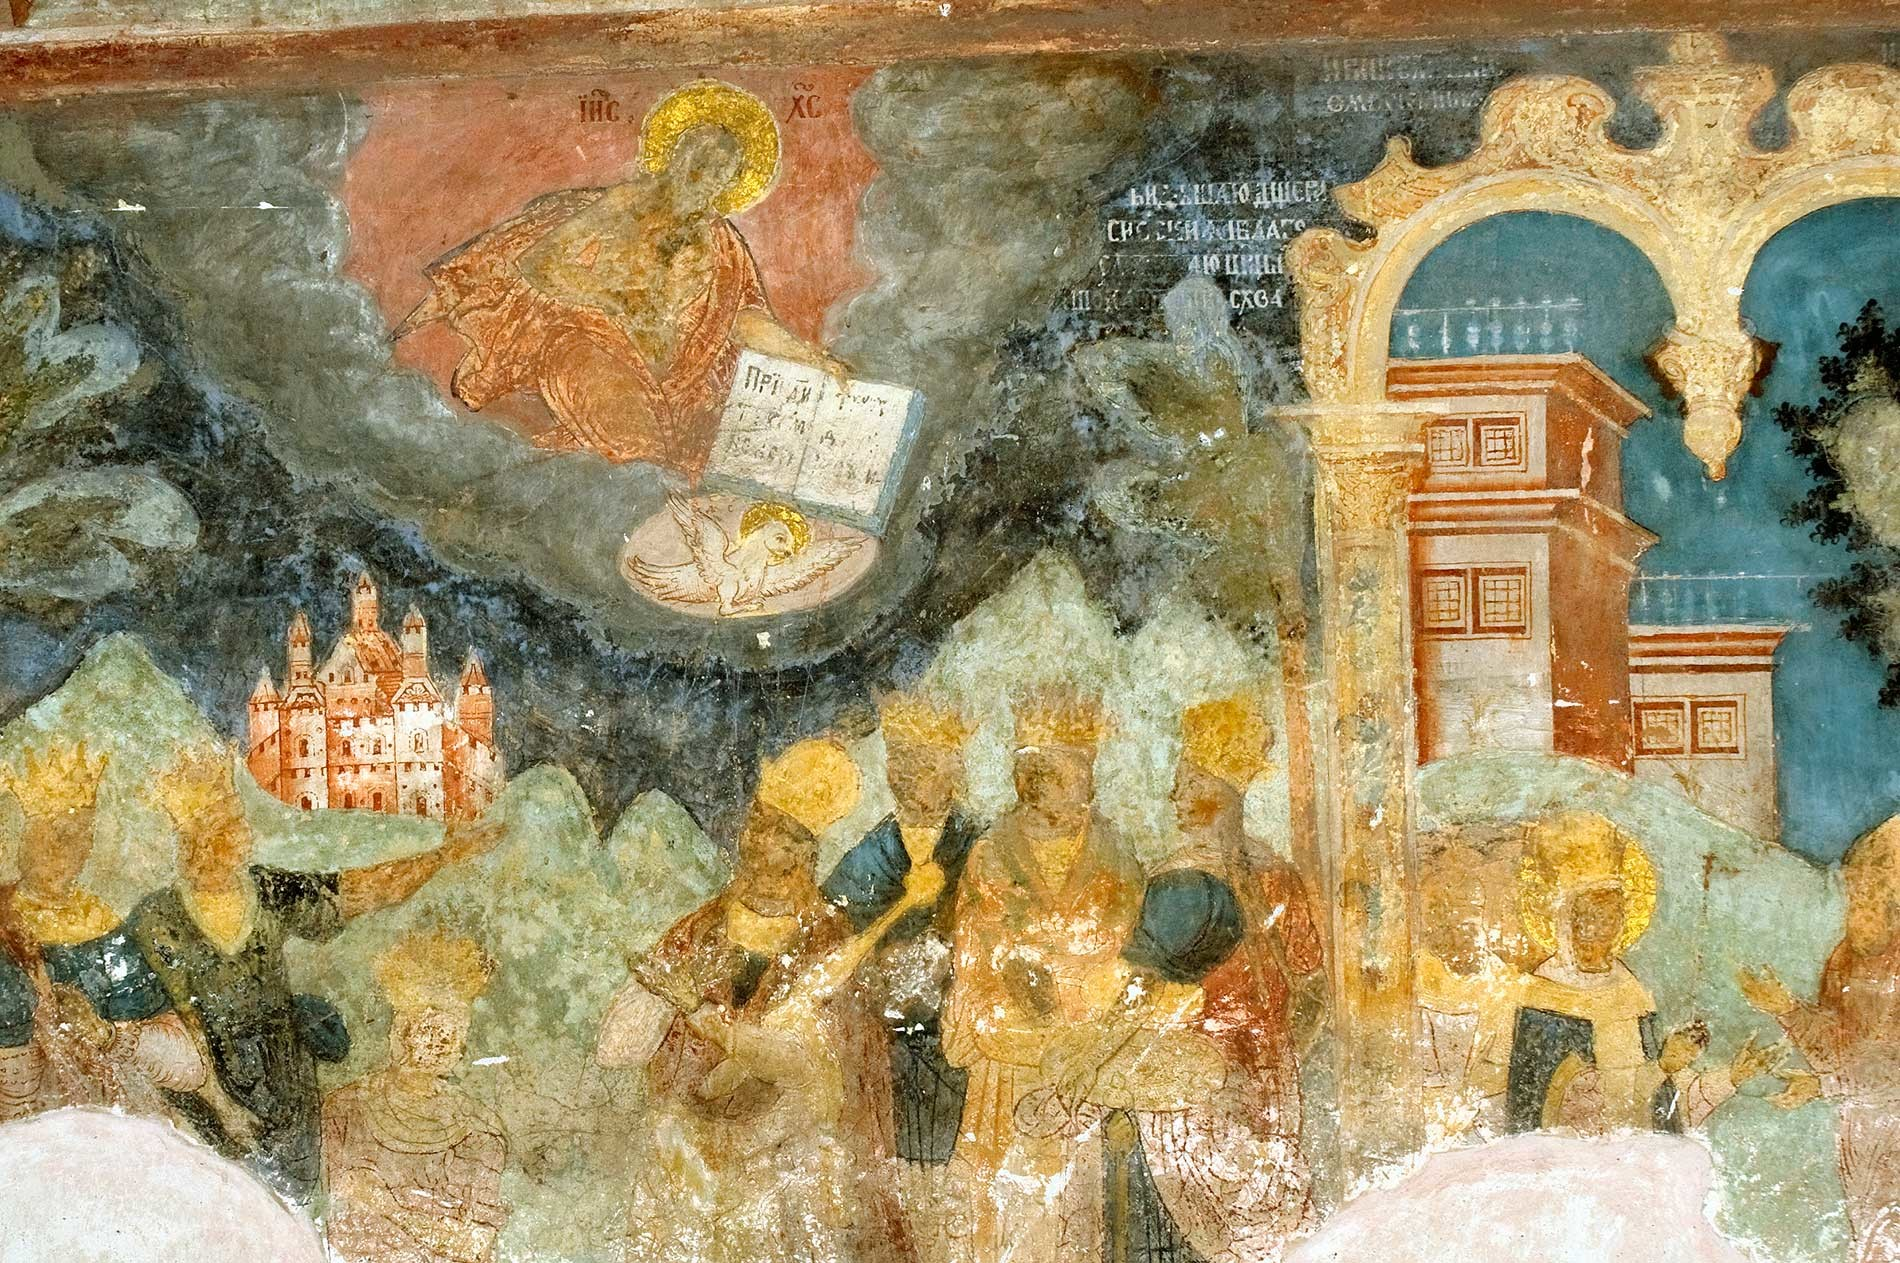 Church of St. John Chrysostom at Korovniki. West wall frescoes include Byzantine court whose luxury was excoriated by St. John Chrysostom. Red cloud contains image of Christ looming over crowned figures at palace. Aug. 15, 2017.